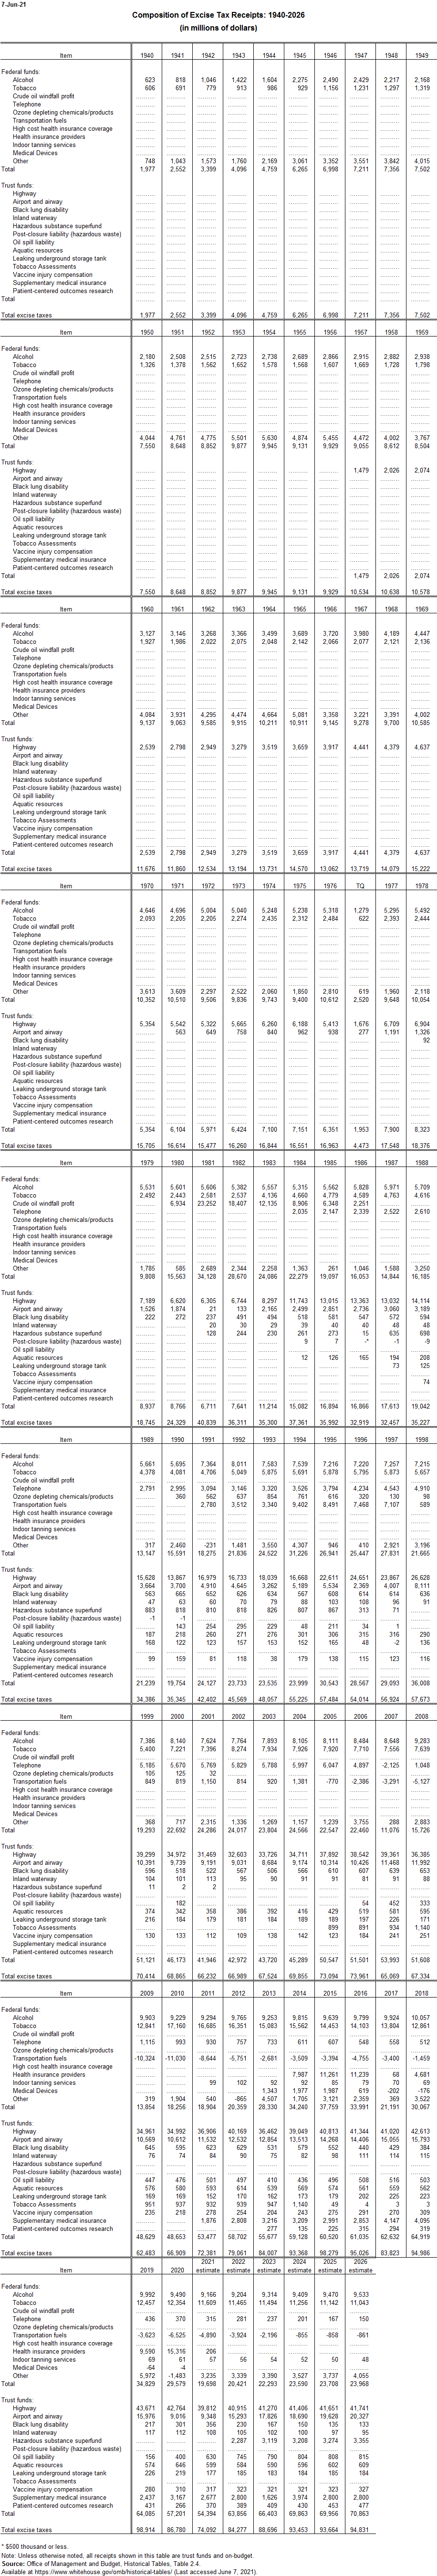 Excise Tax Receipts